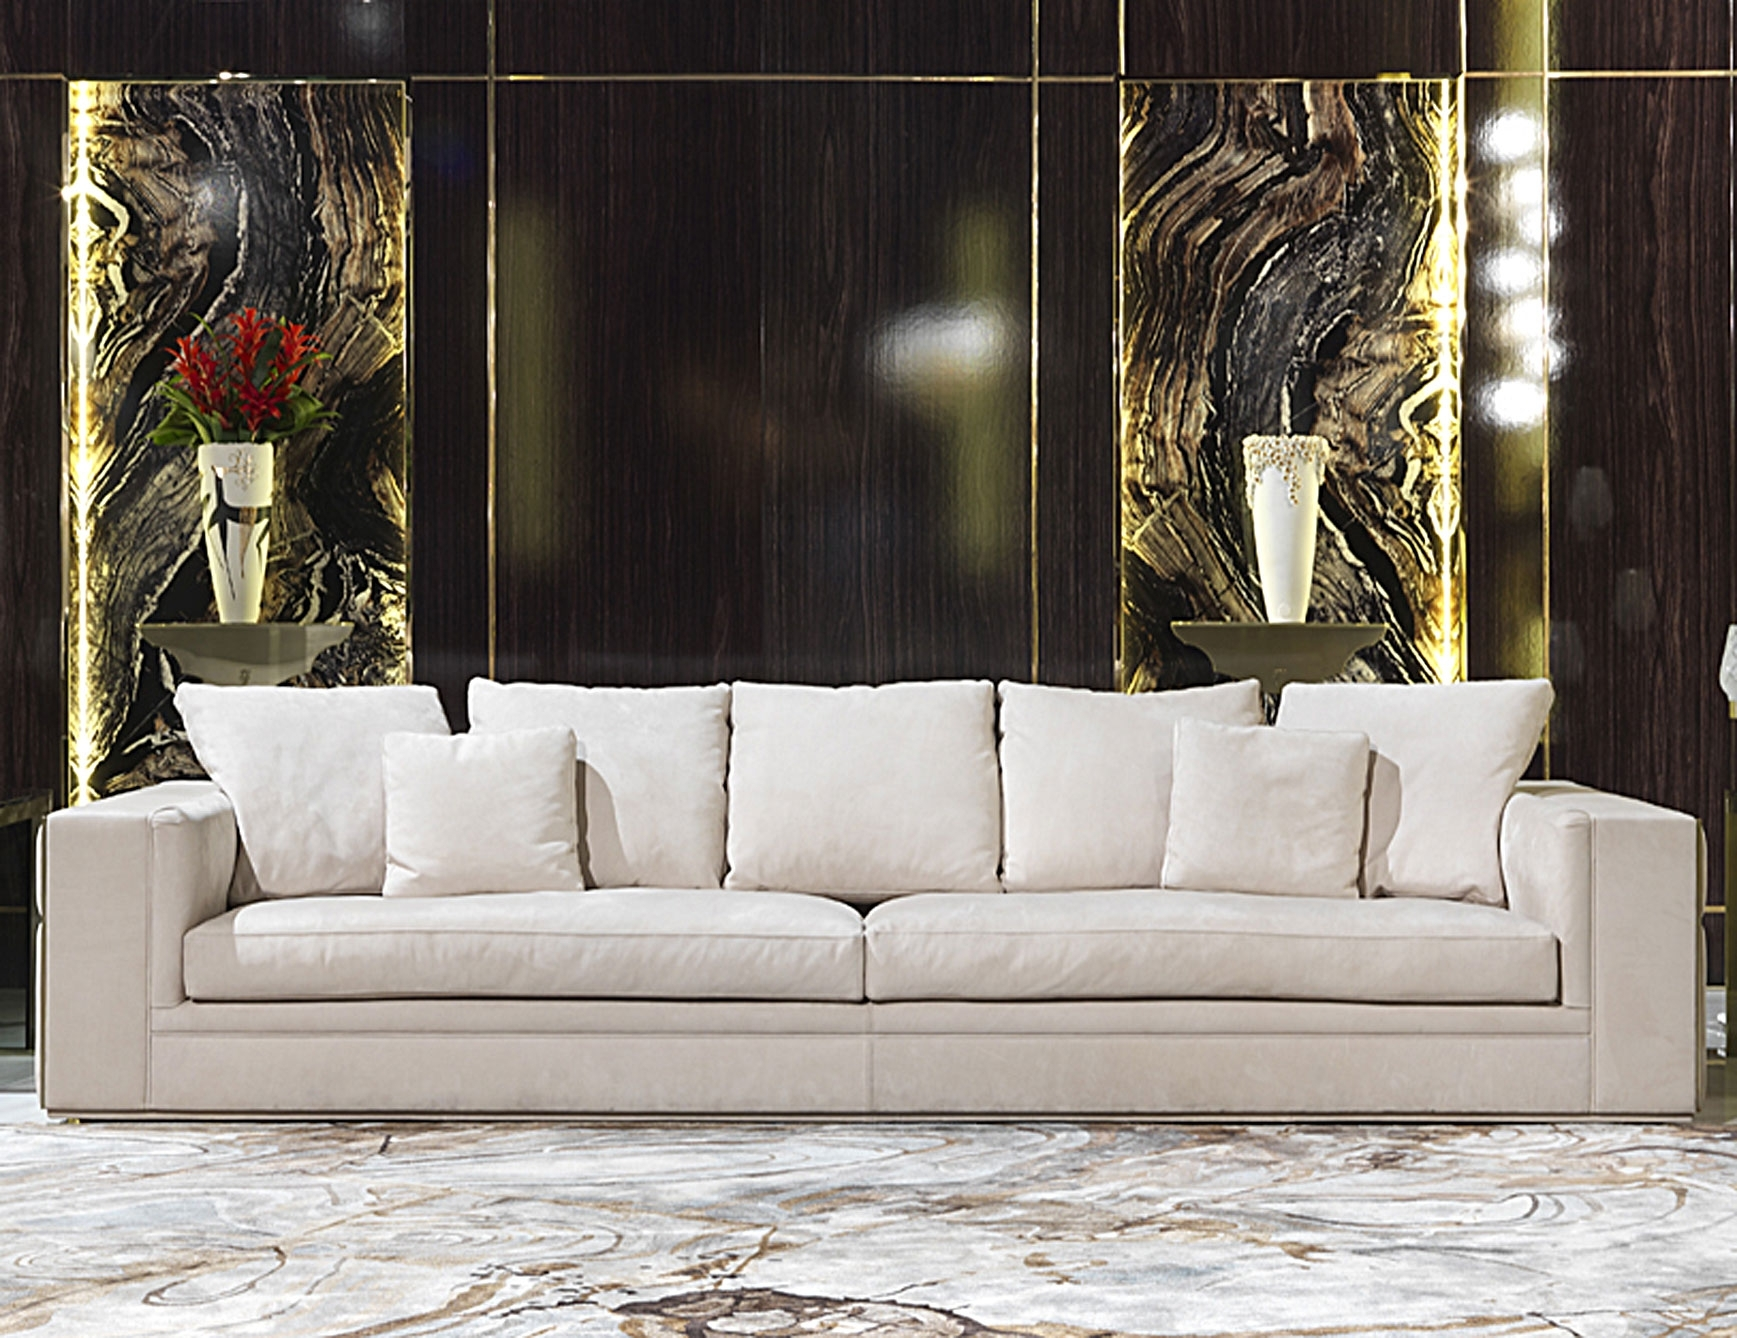 Nella Vetrina Visionnaire Ipe Cavalli Babylon Luxury Italian Sofa With Regard To Luxury Sofas (Image 7 of 10)